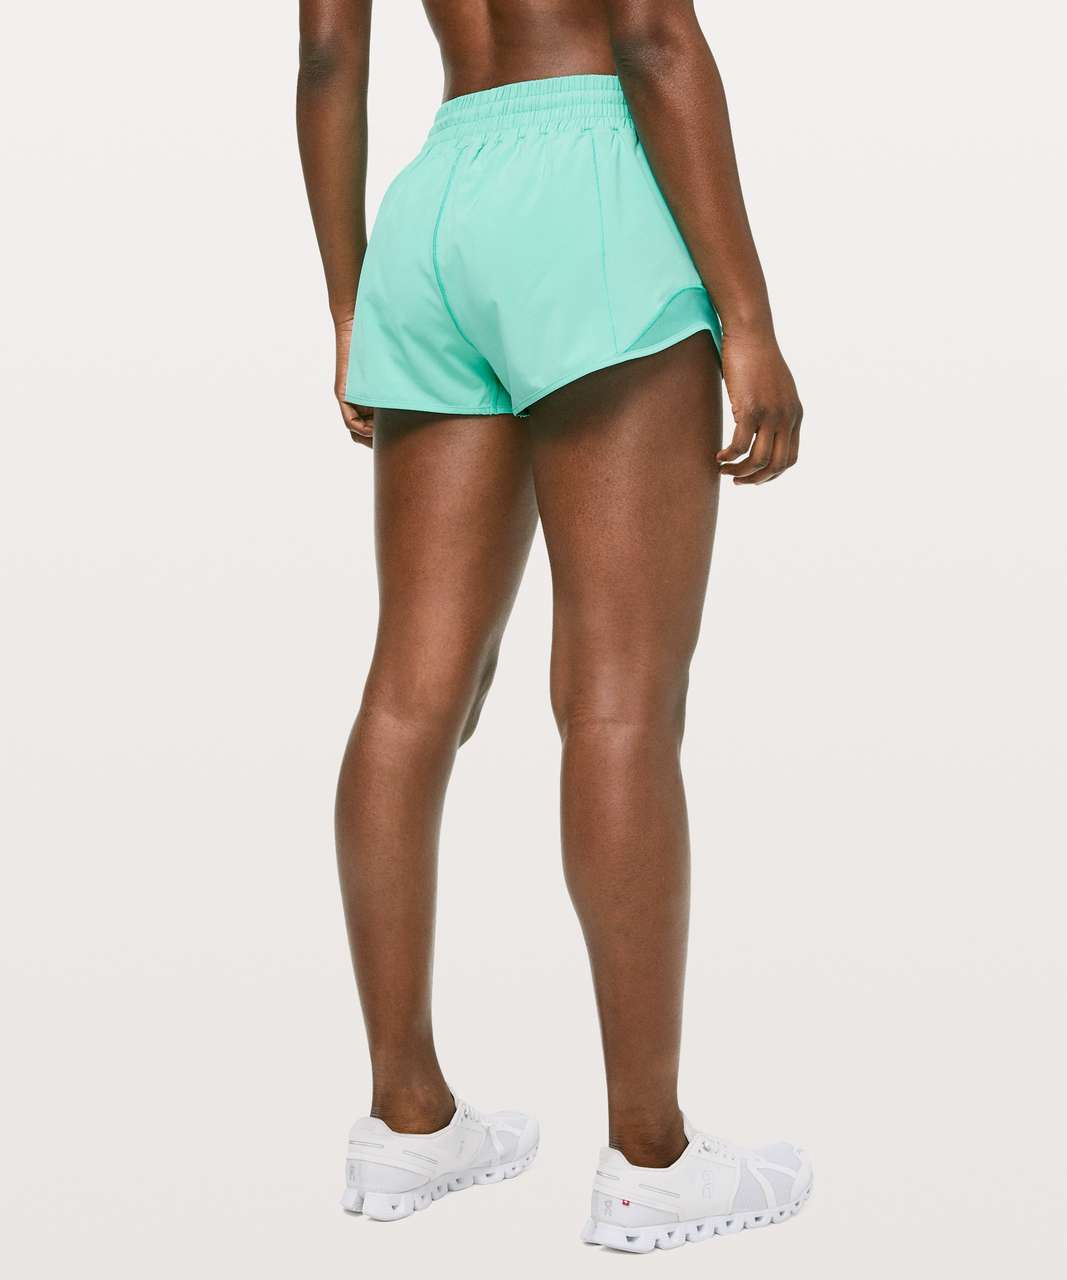 "Lululemon Hotty Hot Short *High-Rise 2.5"" - Bali Breeze"